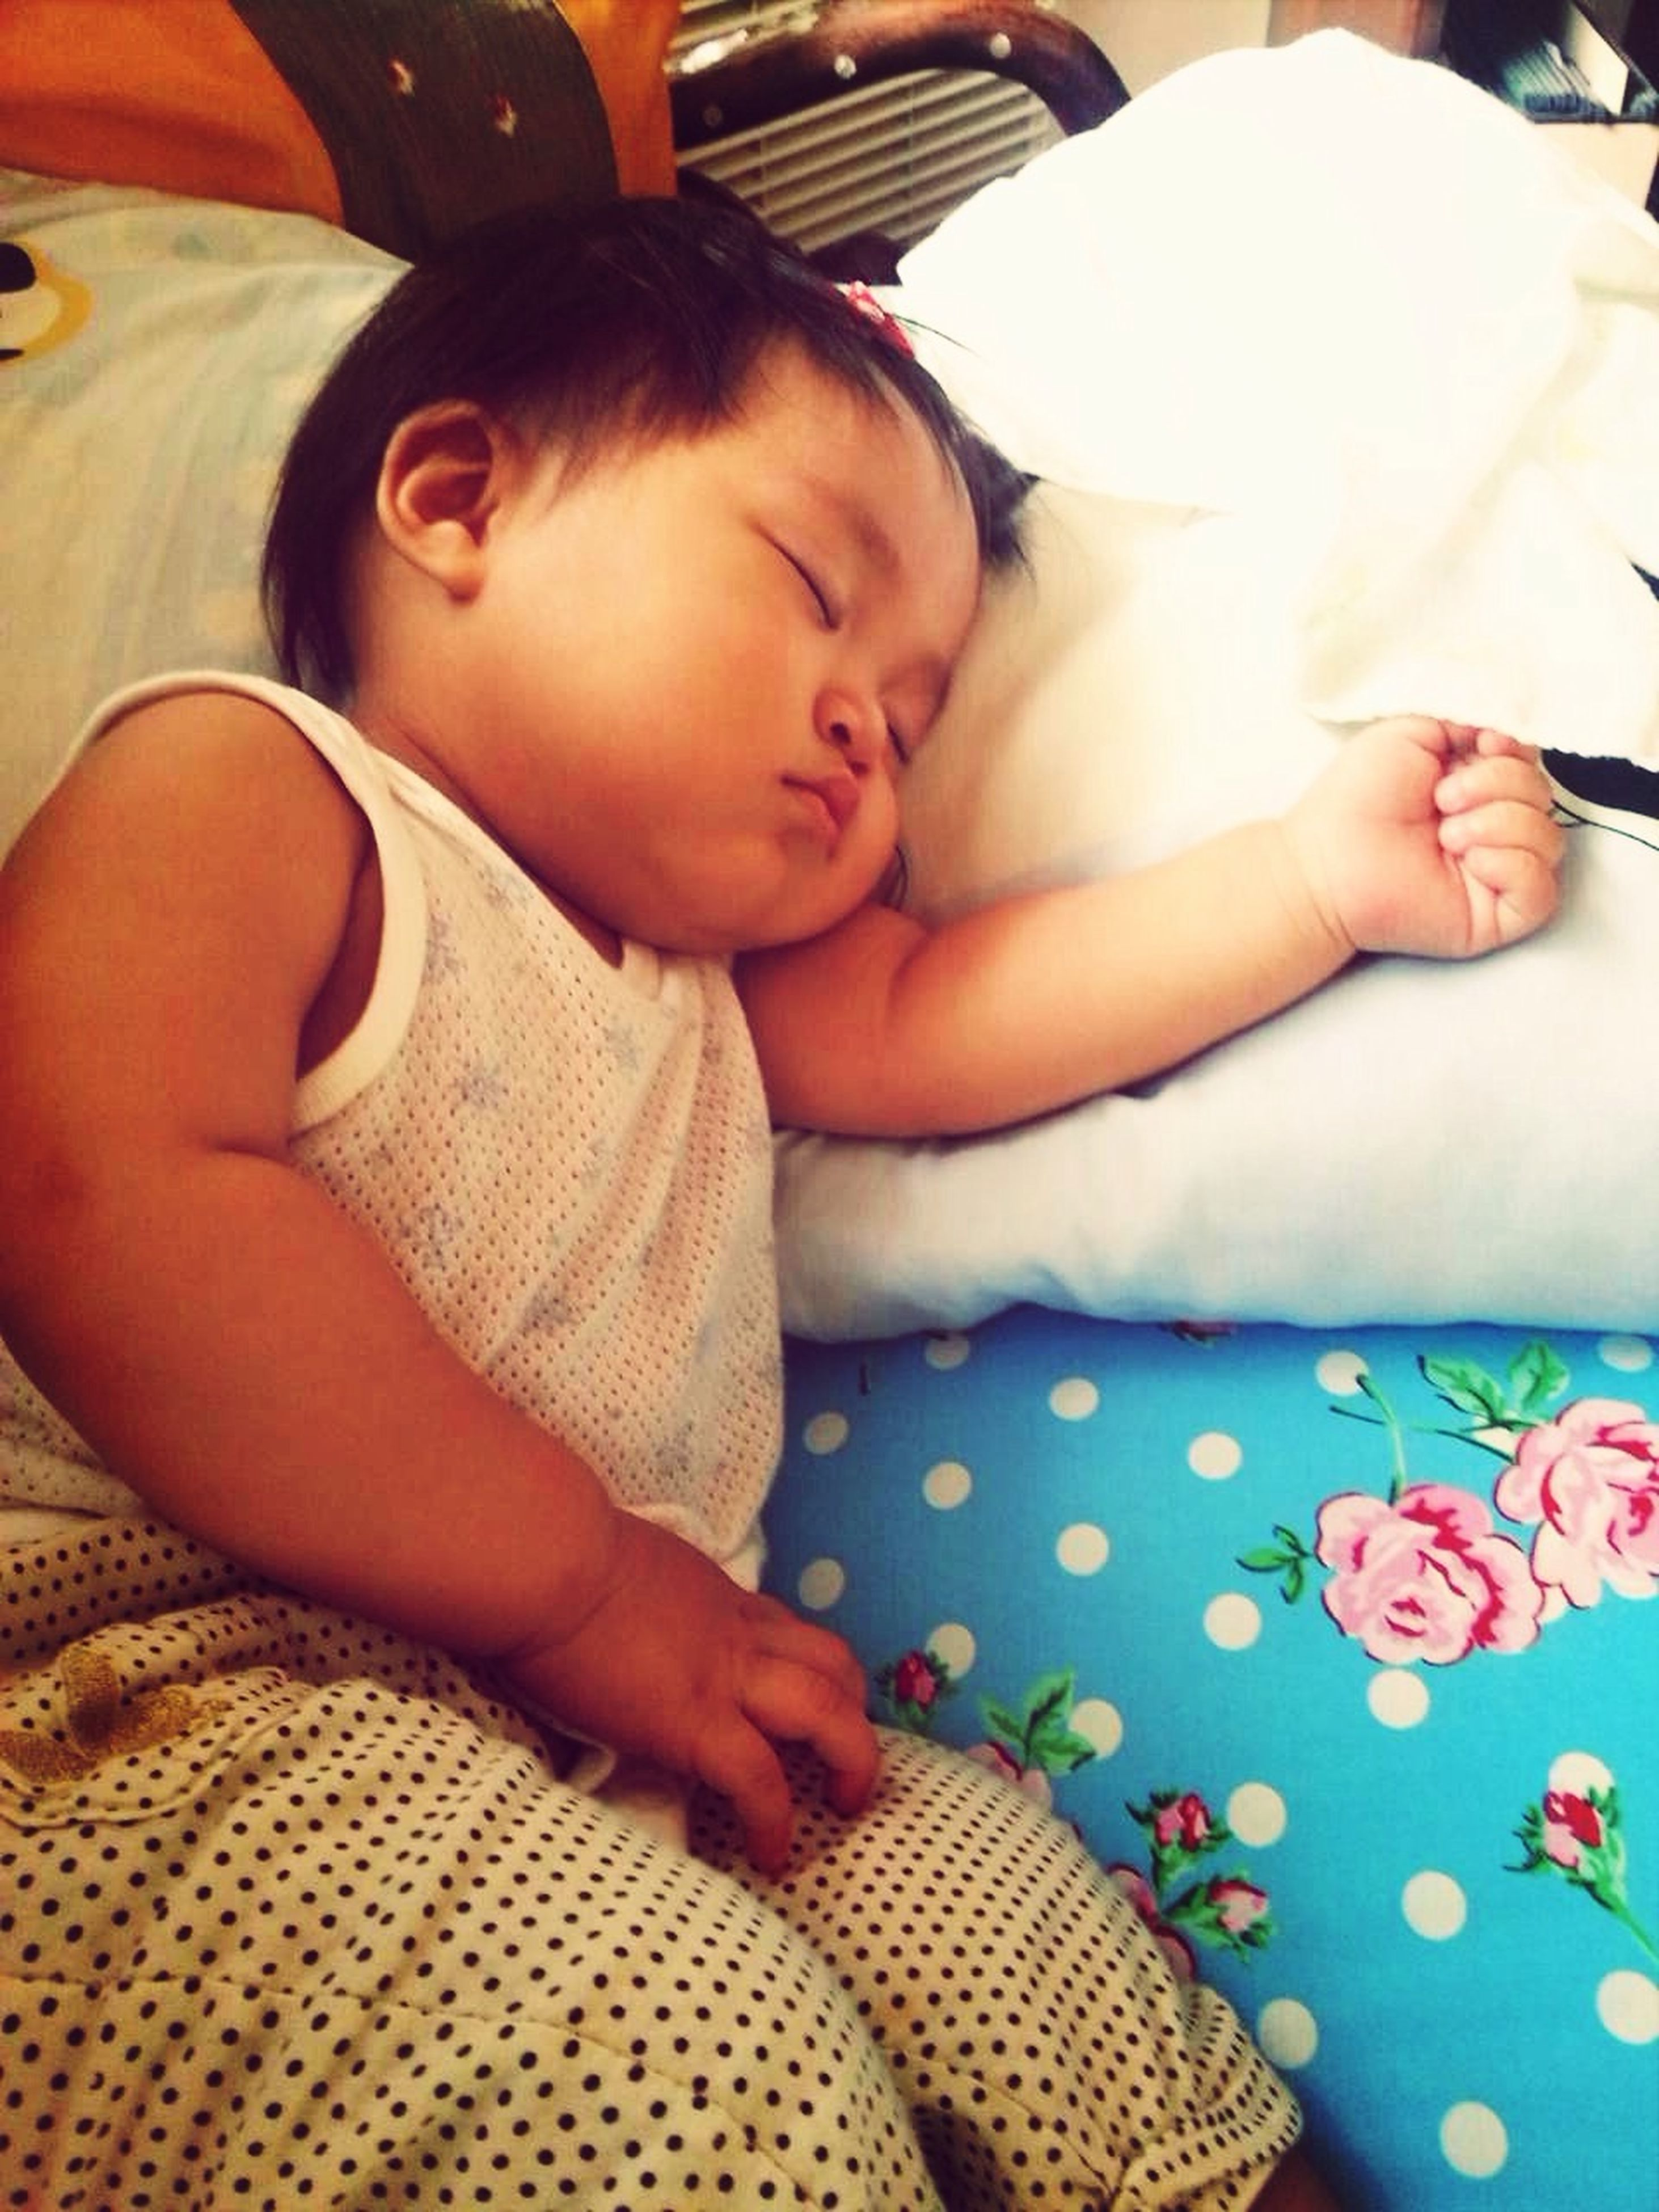 indoors, childhood, baby, innocence, babyhood, toddler, bed, person, elementary age, cute, relaxation, lifestyles, boys, unknown gender, home interior, leisure activity, girls, sleeping